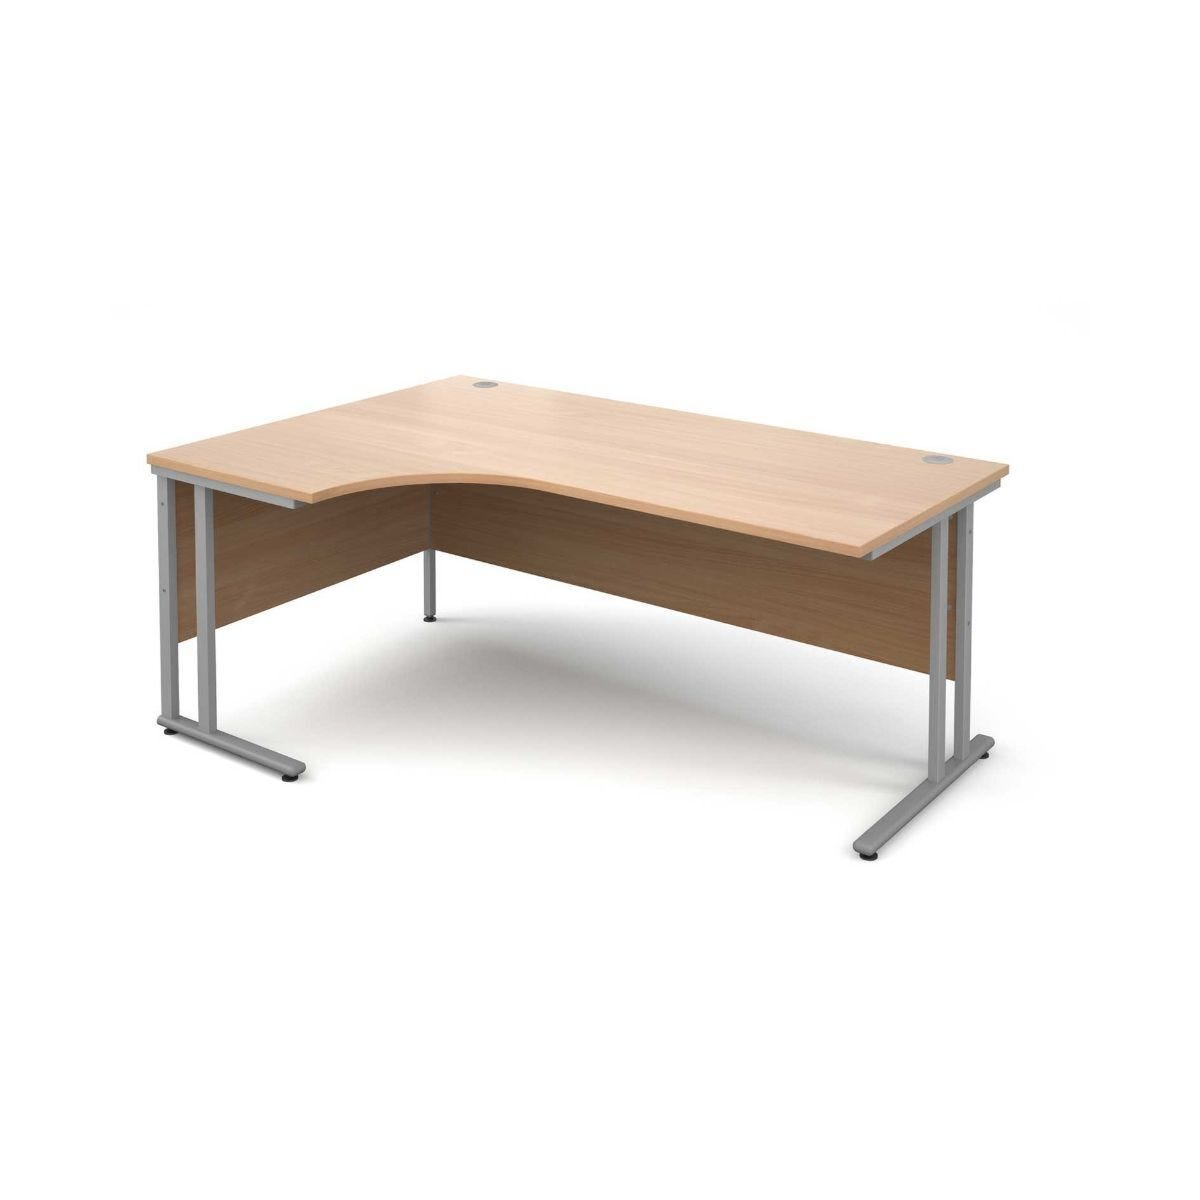 Maestro 25 Left Hand Ergonomic 1800 Desk with Silver Legs